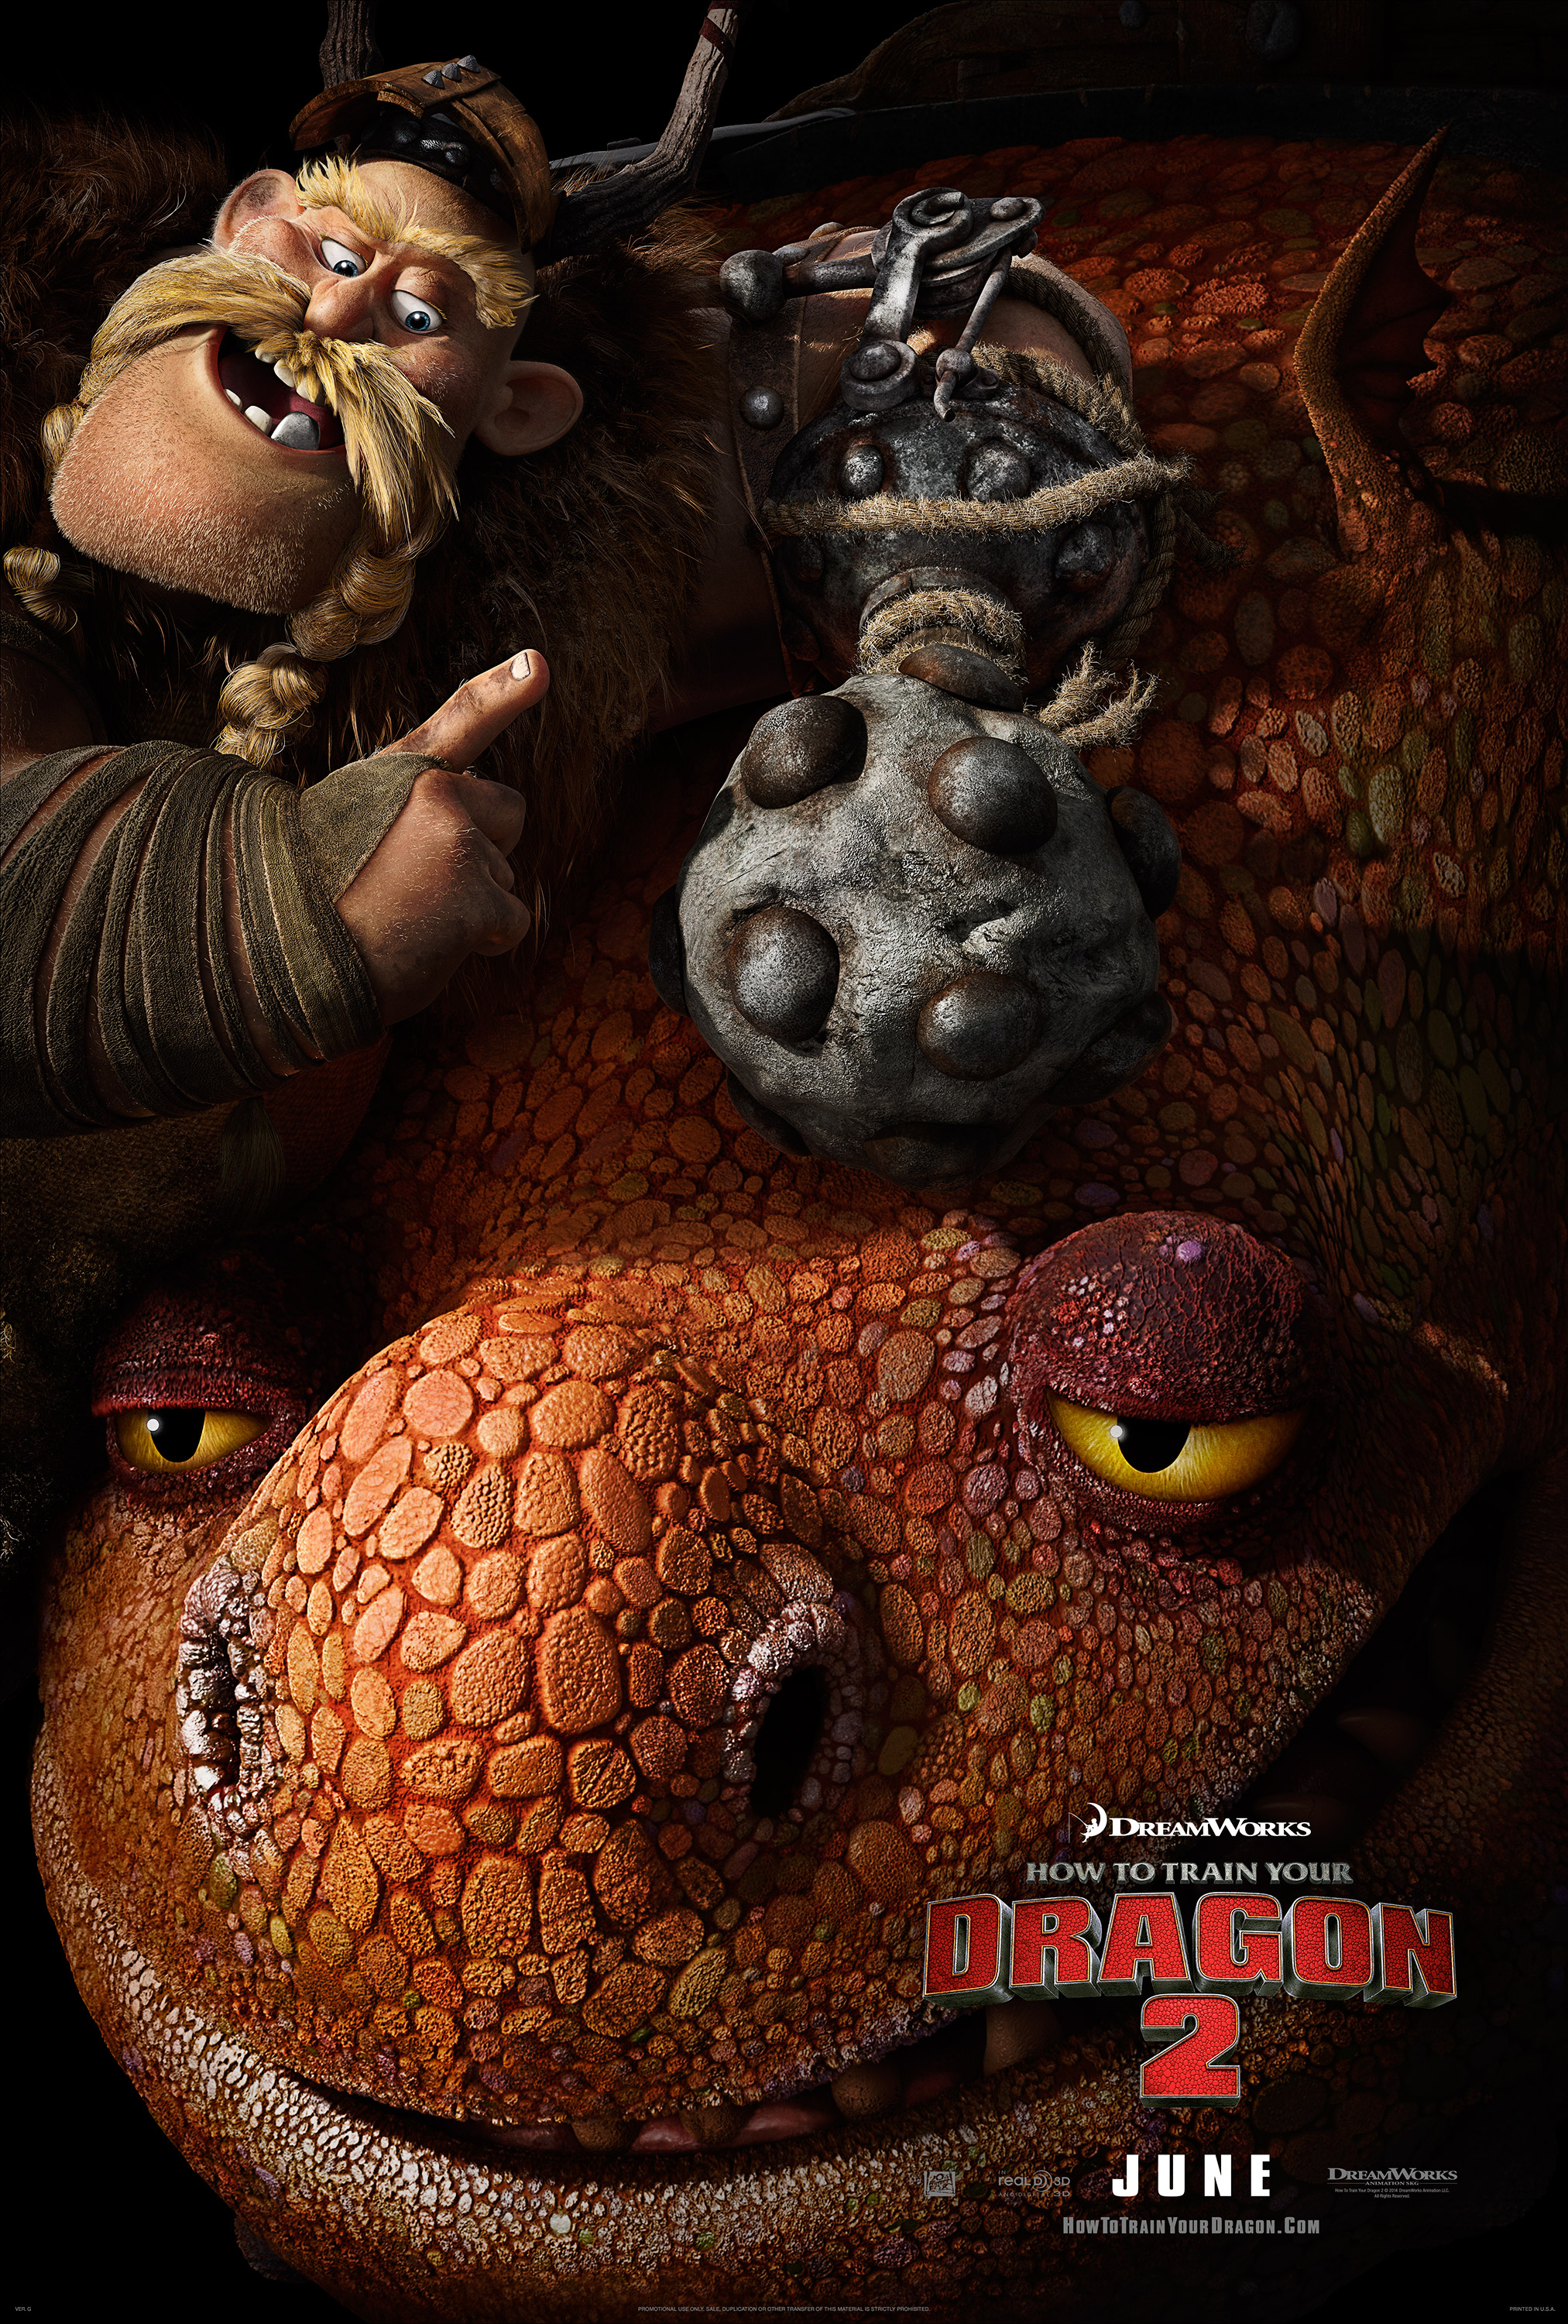 How To Train Your Dragon 2 Poster #6 | Reggie's Take.com